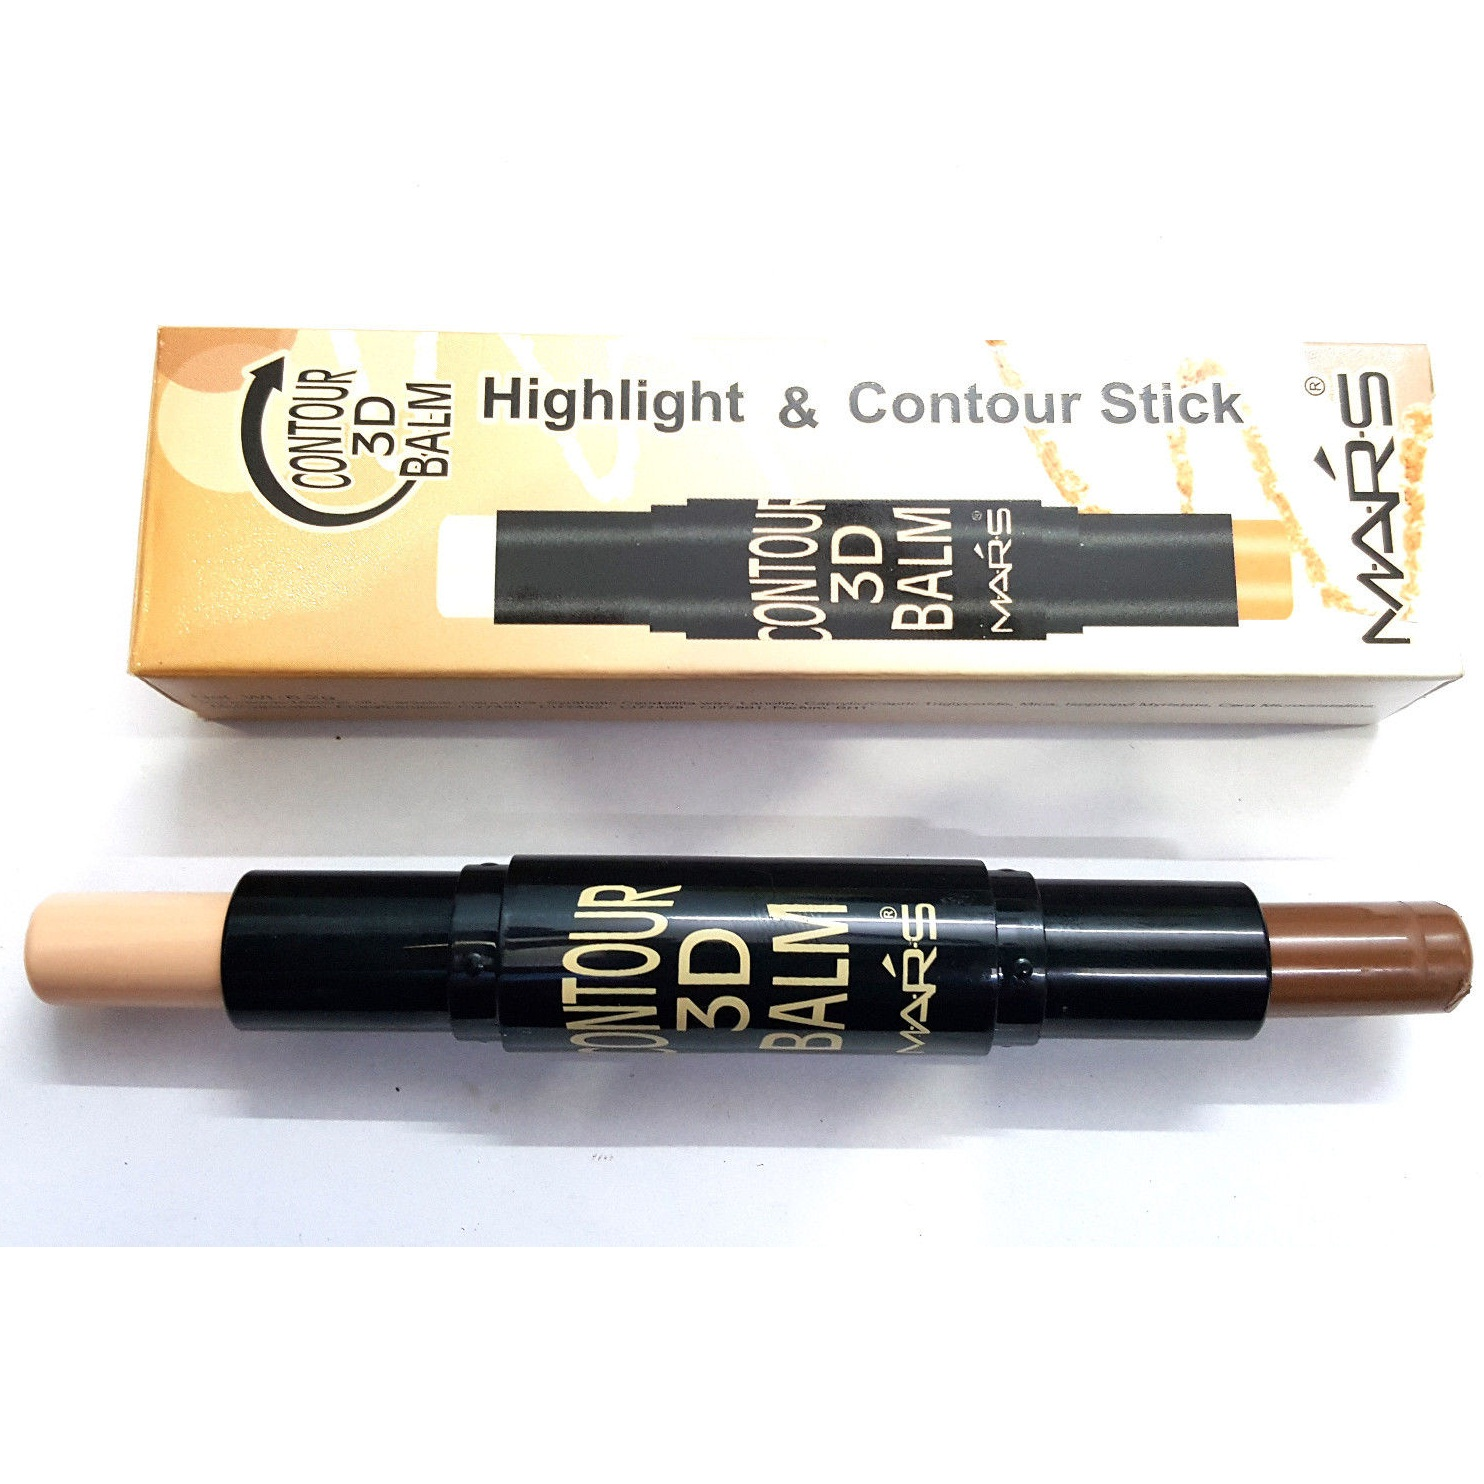 Mars Highlight and Contour Stick Concealer